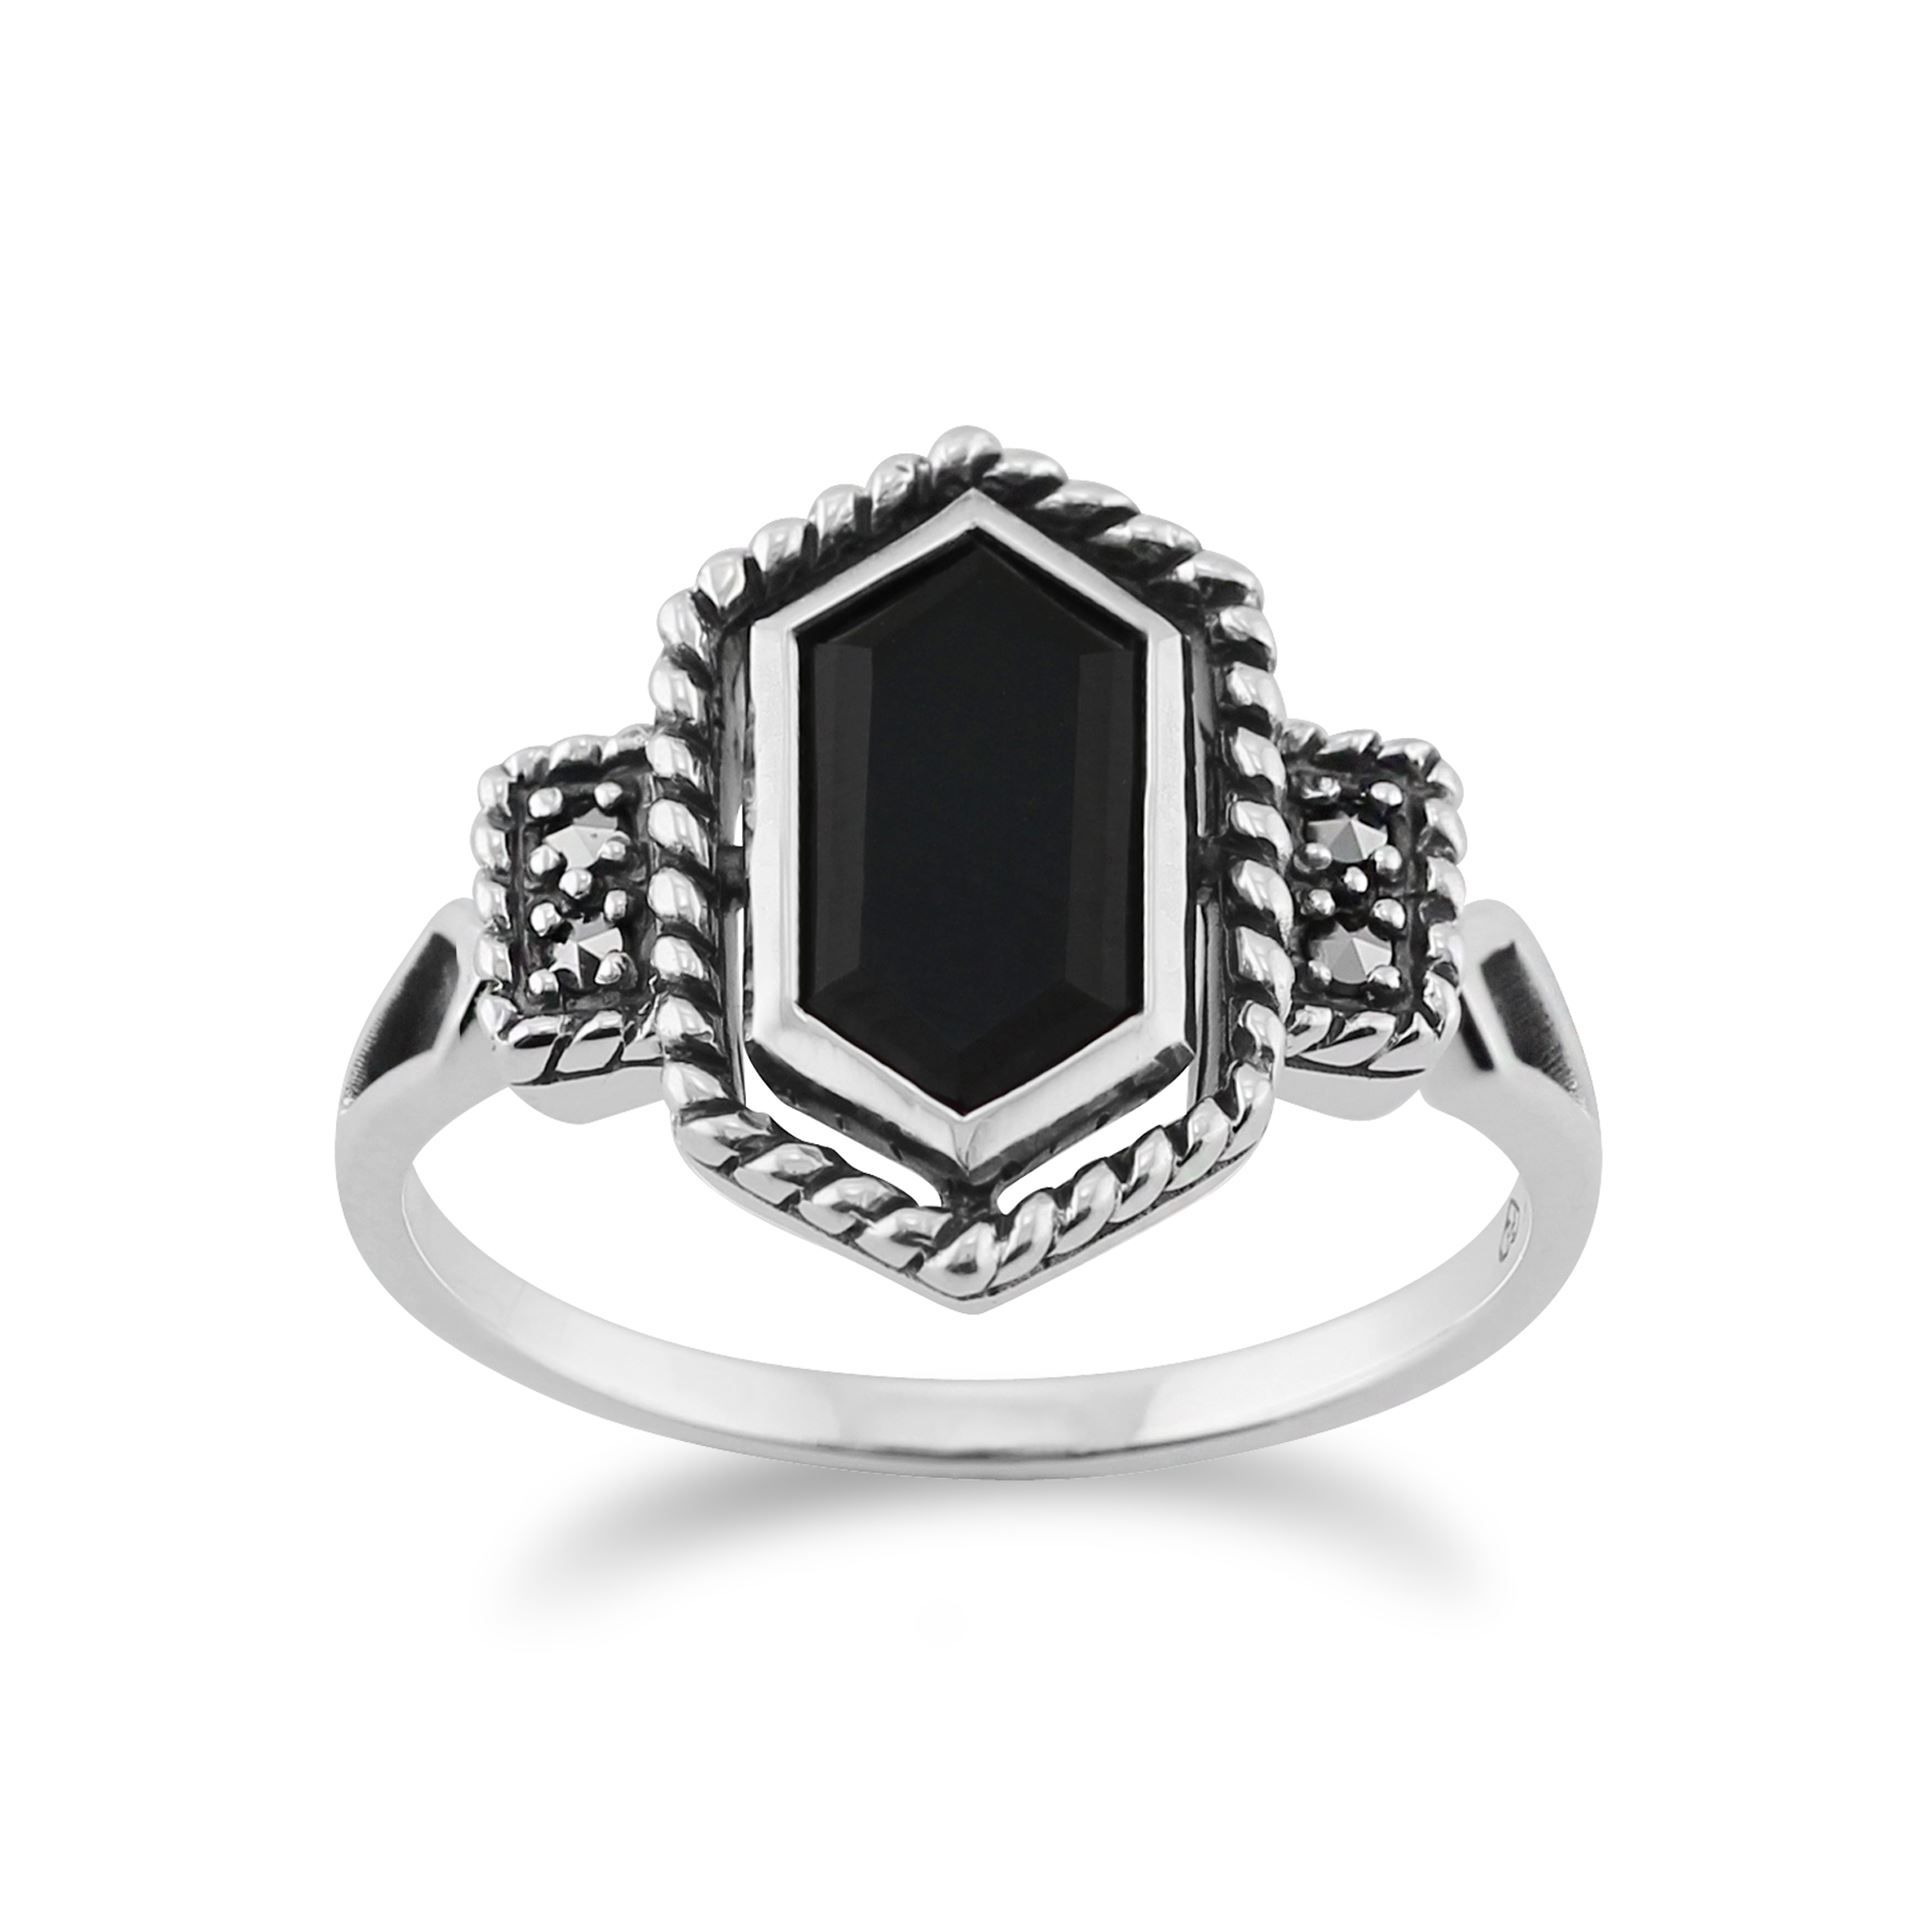 Gemondo 925 Sterling Silver Art Deco 1.20ct Black Onyx & Marcasite Ring